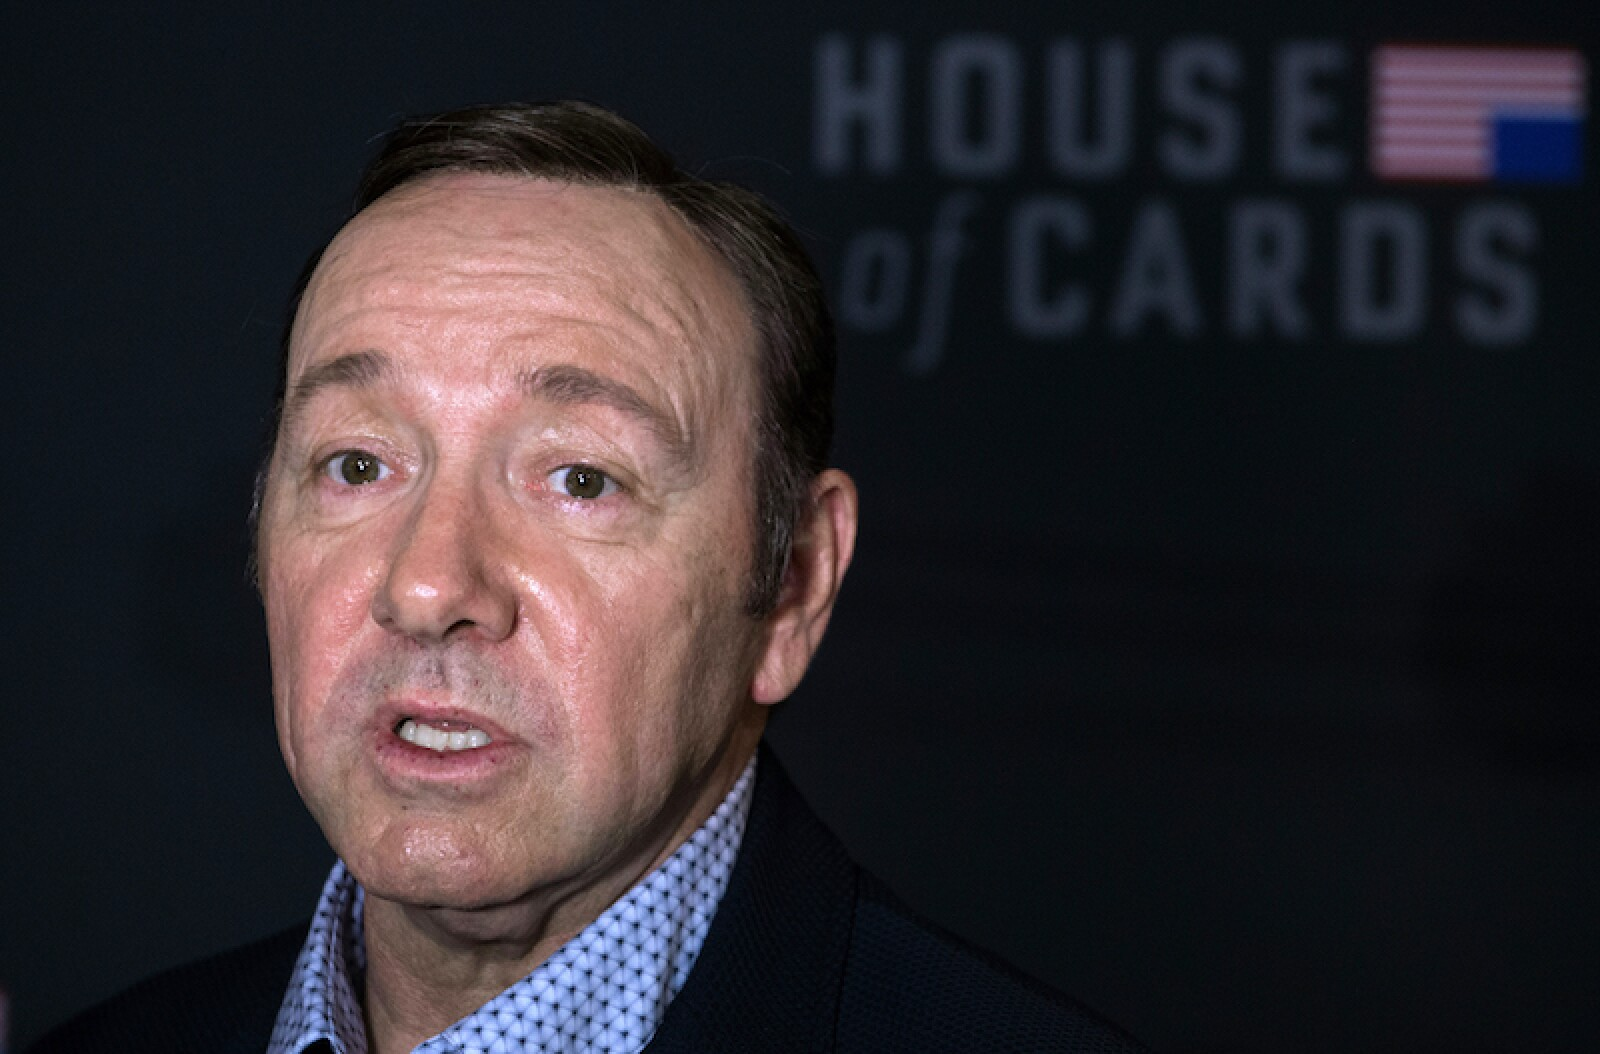 2 Kevin Spacey